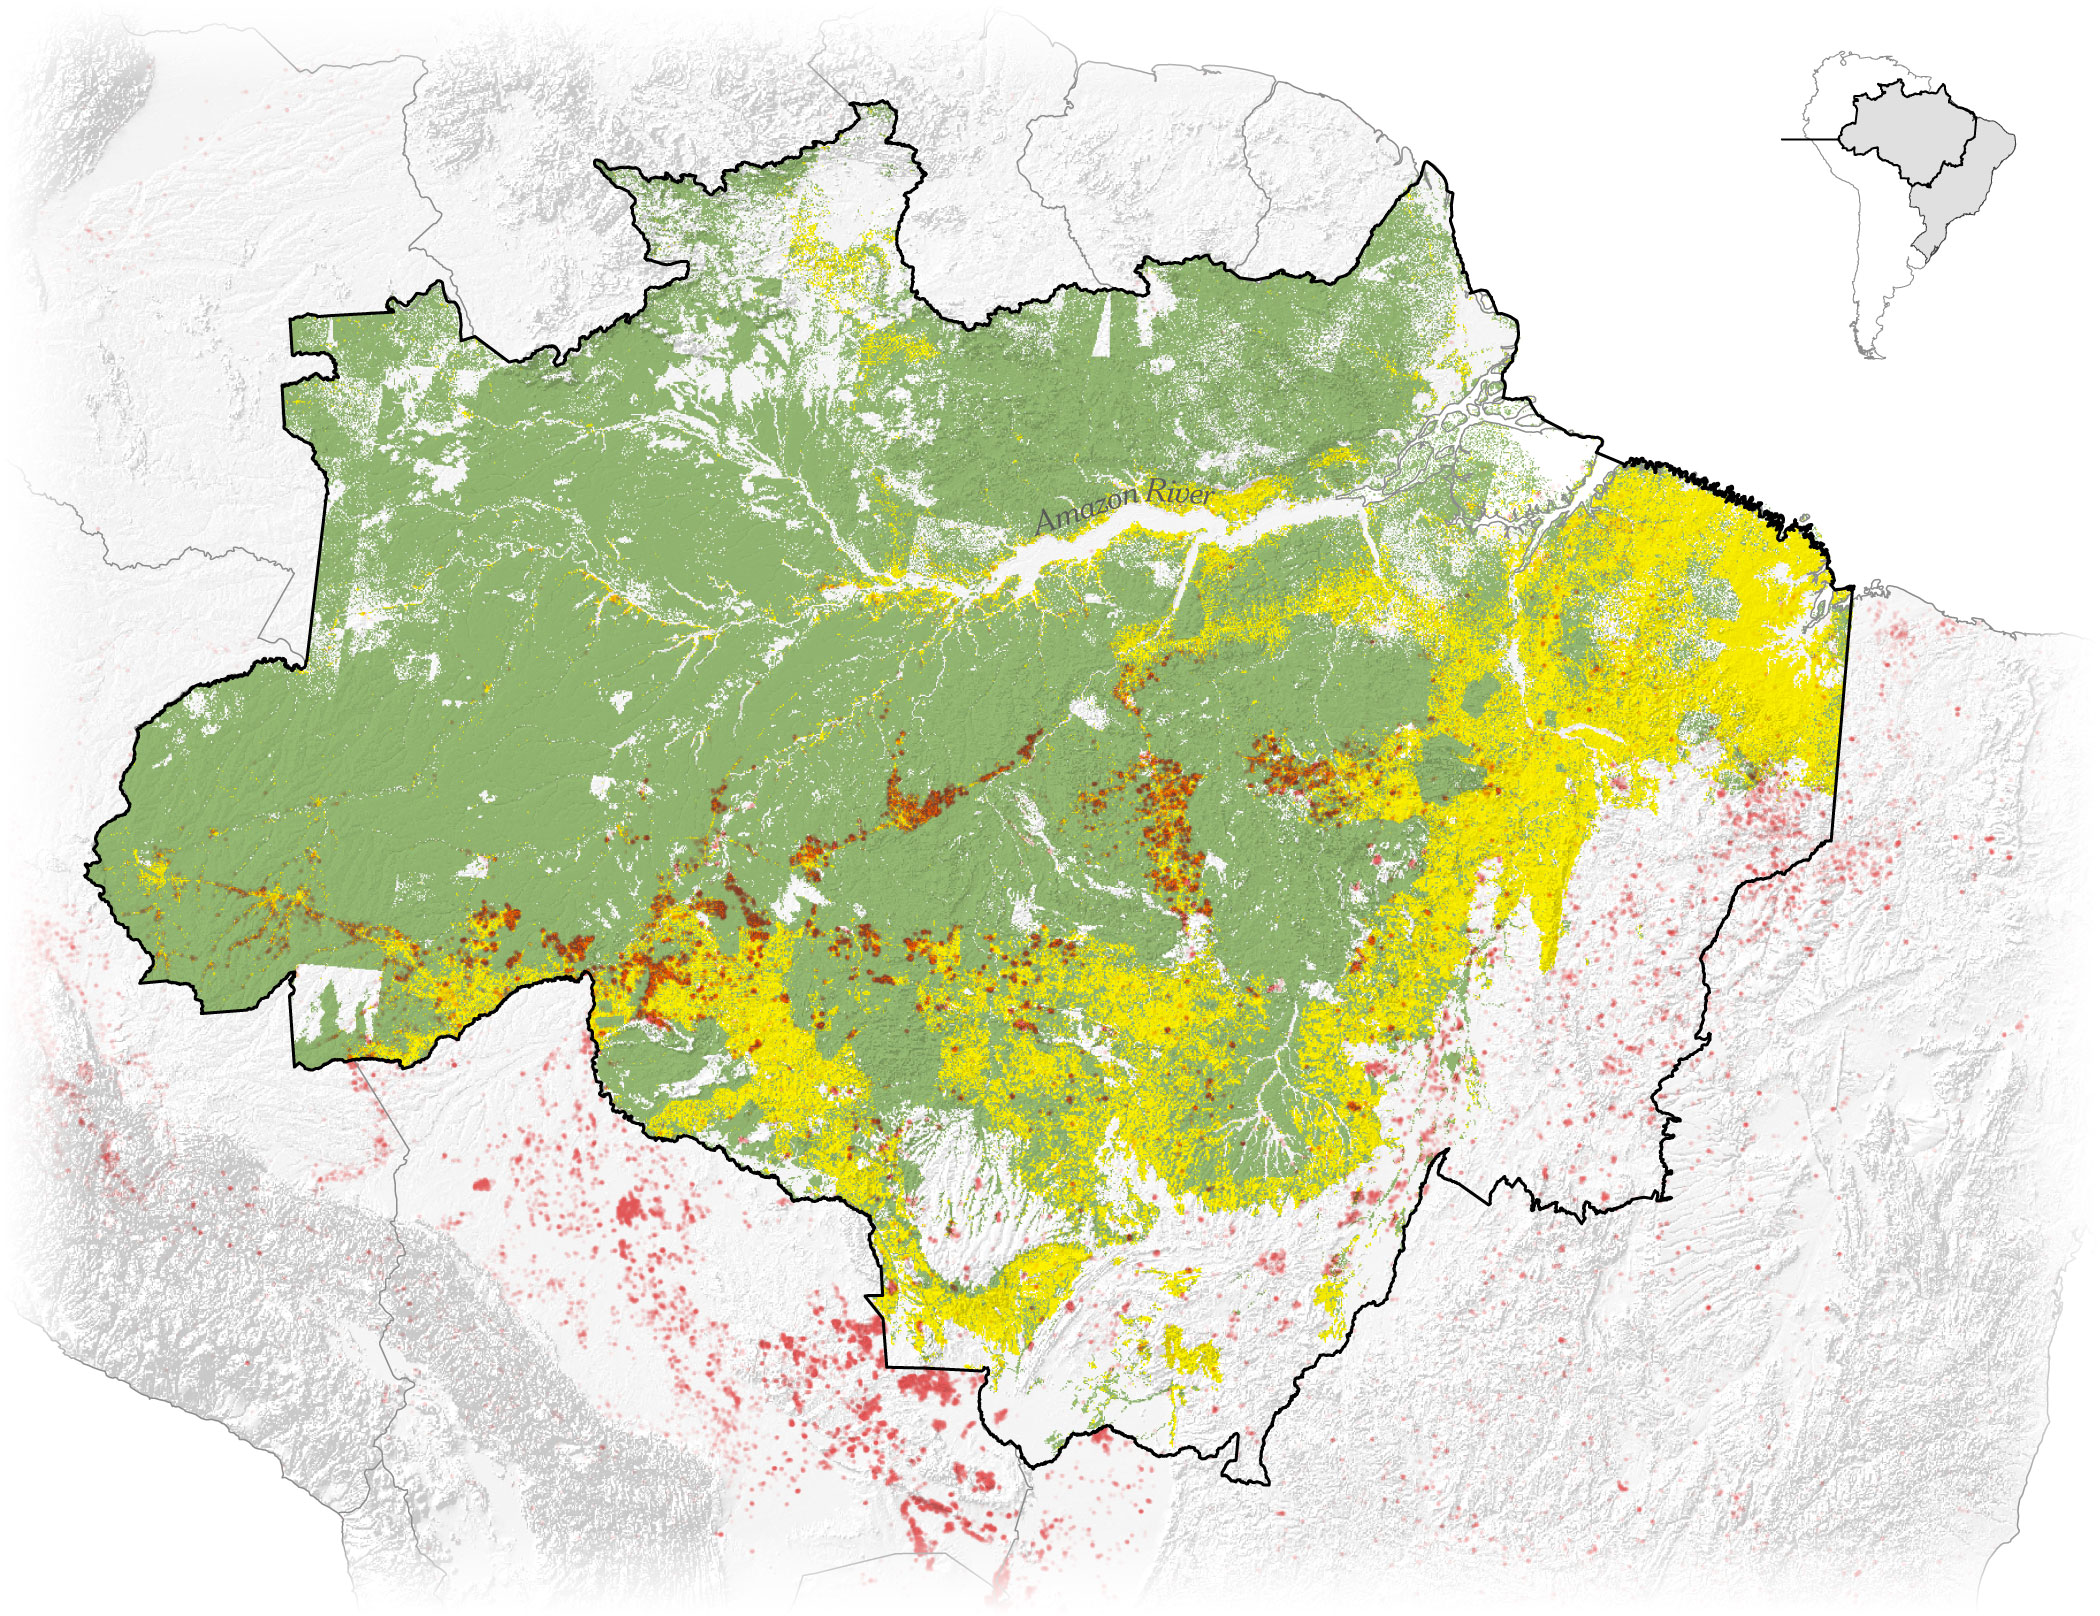 Brazilian soybean area expansion in real time, sat